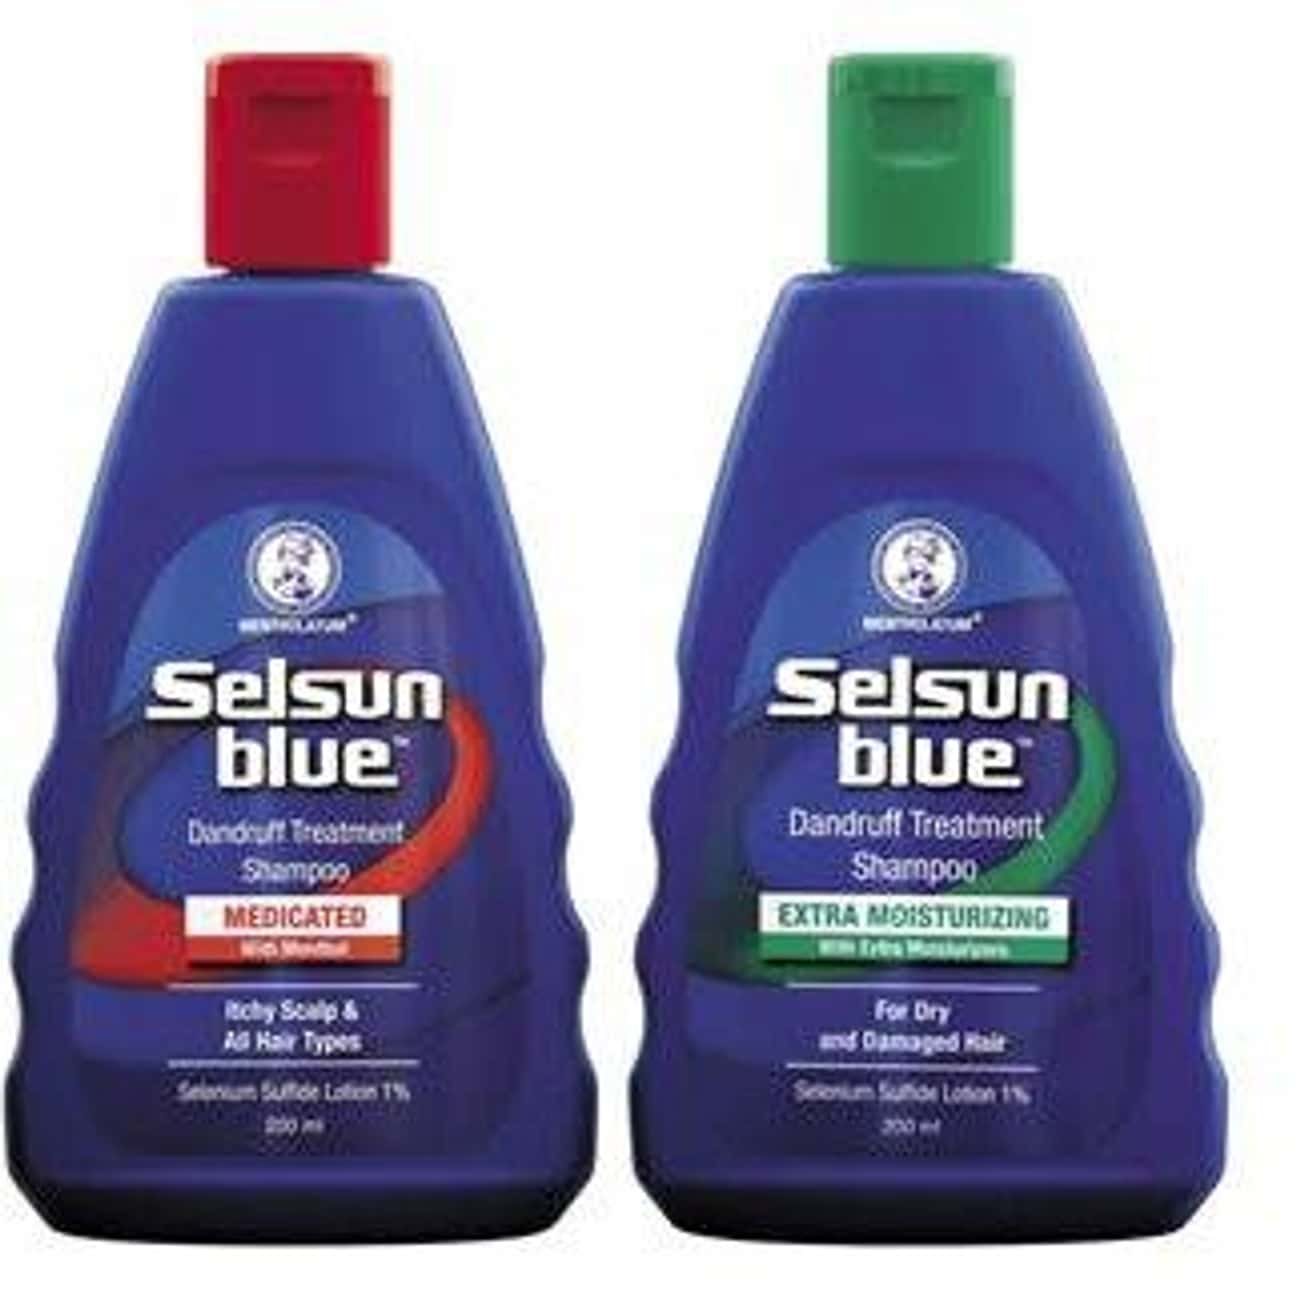 Selsun Blue Anti-Dandruff Sham is listed (or ranked) 3 on the list The Best Dandruff Shampoo